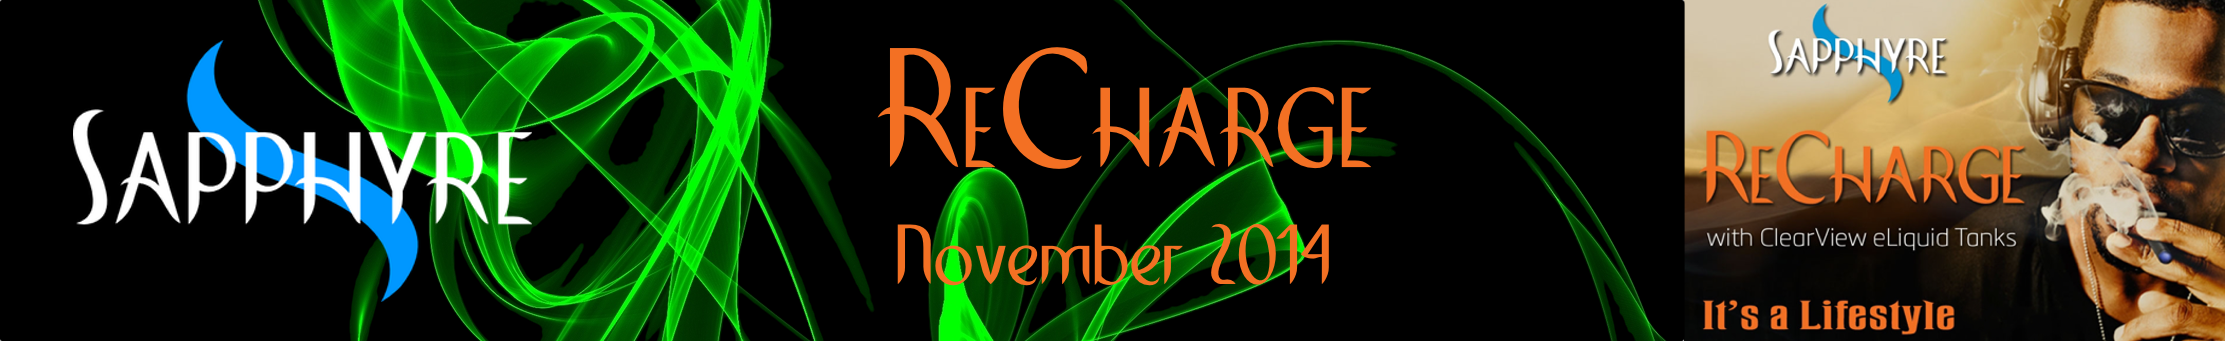 sapphyre-recharge-2014-.png